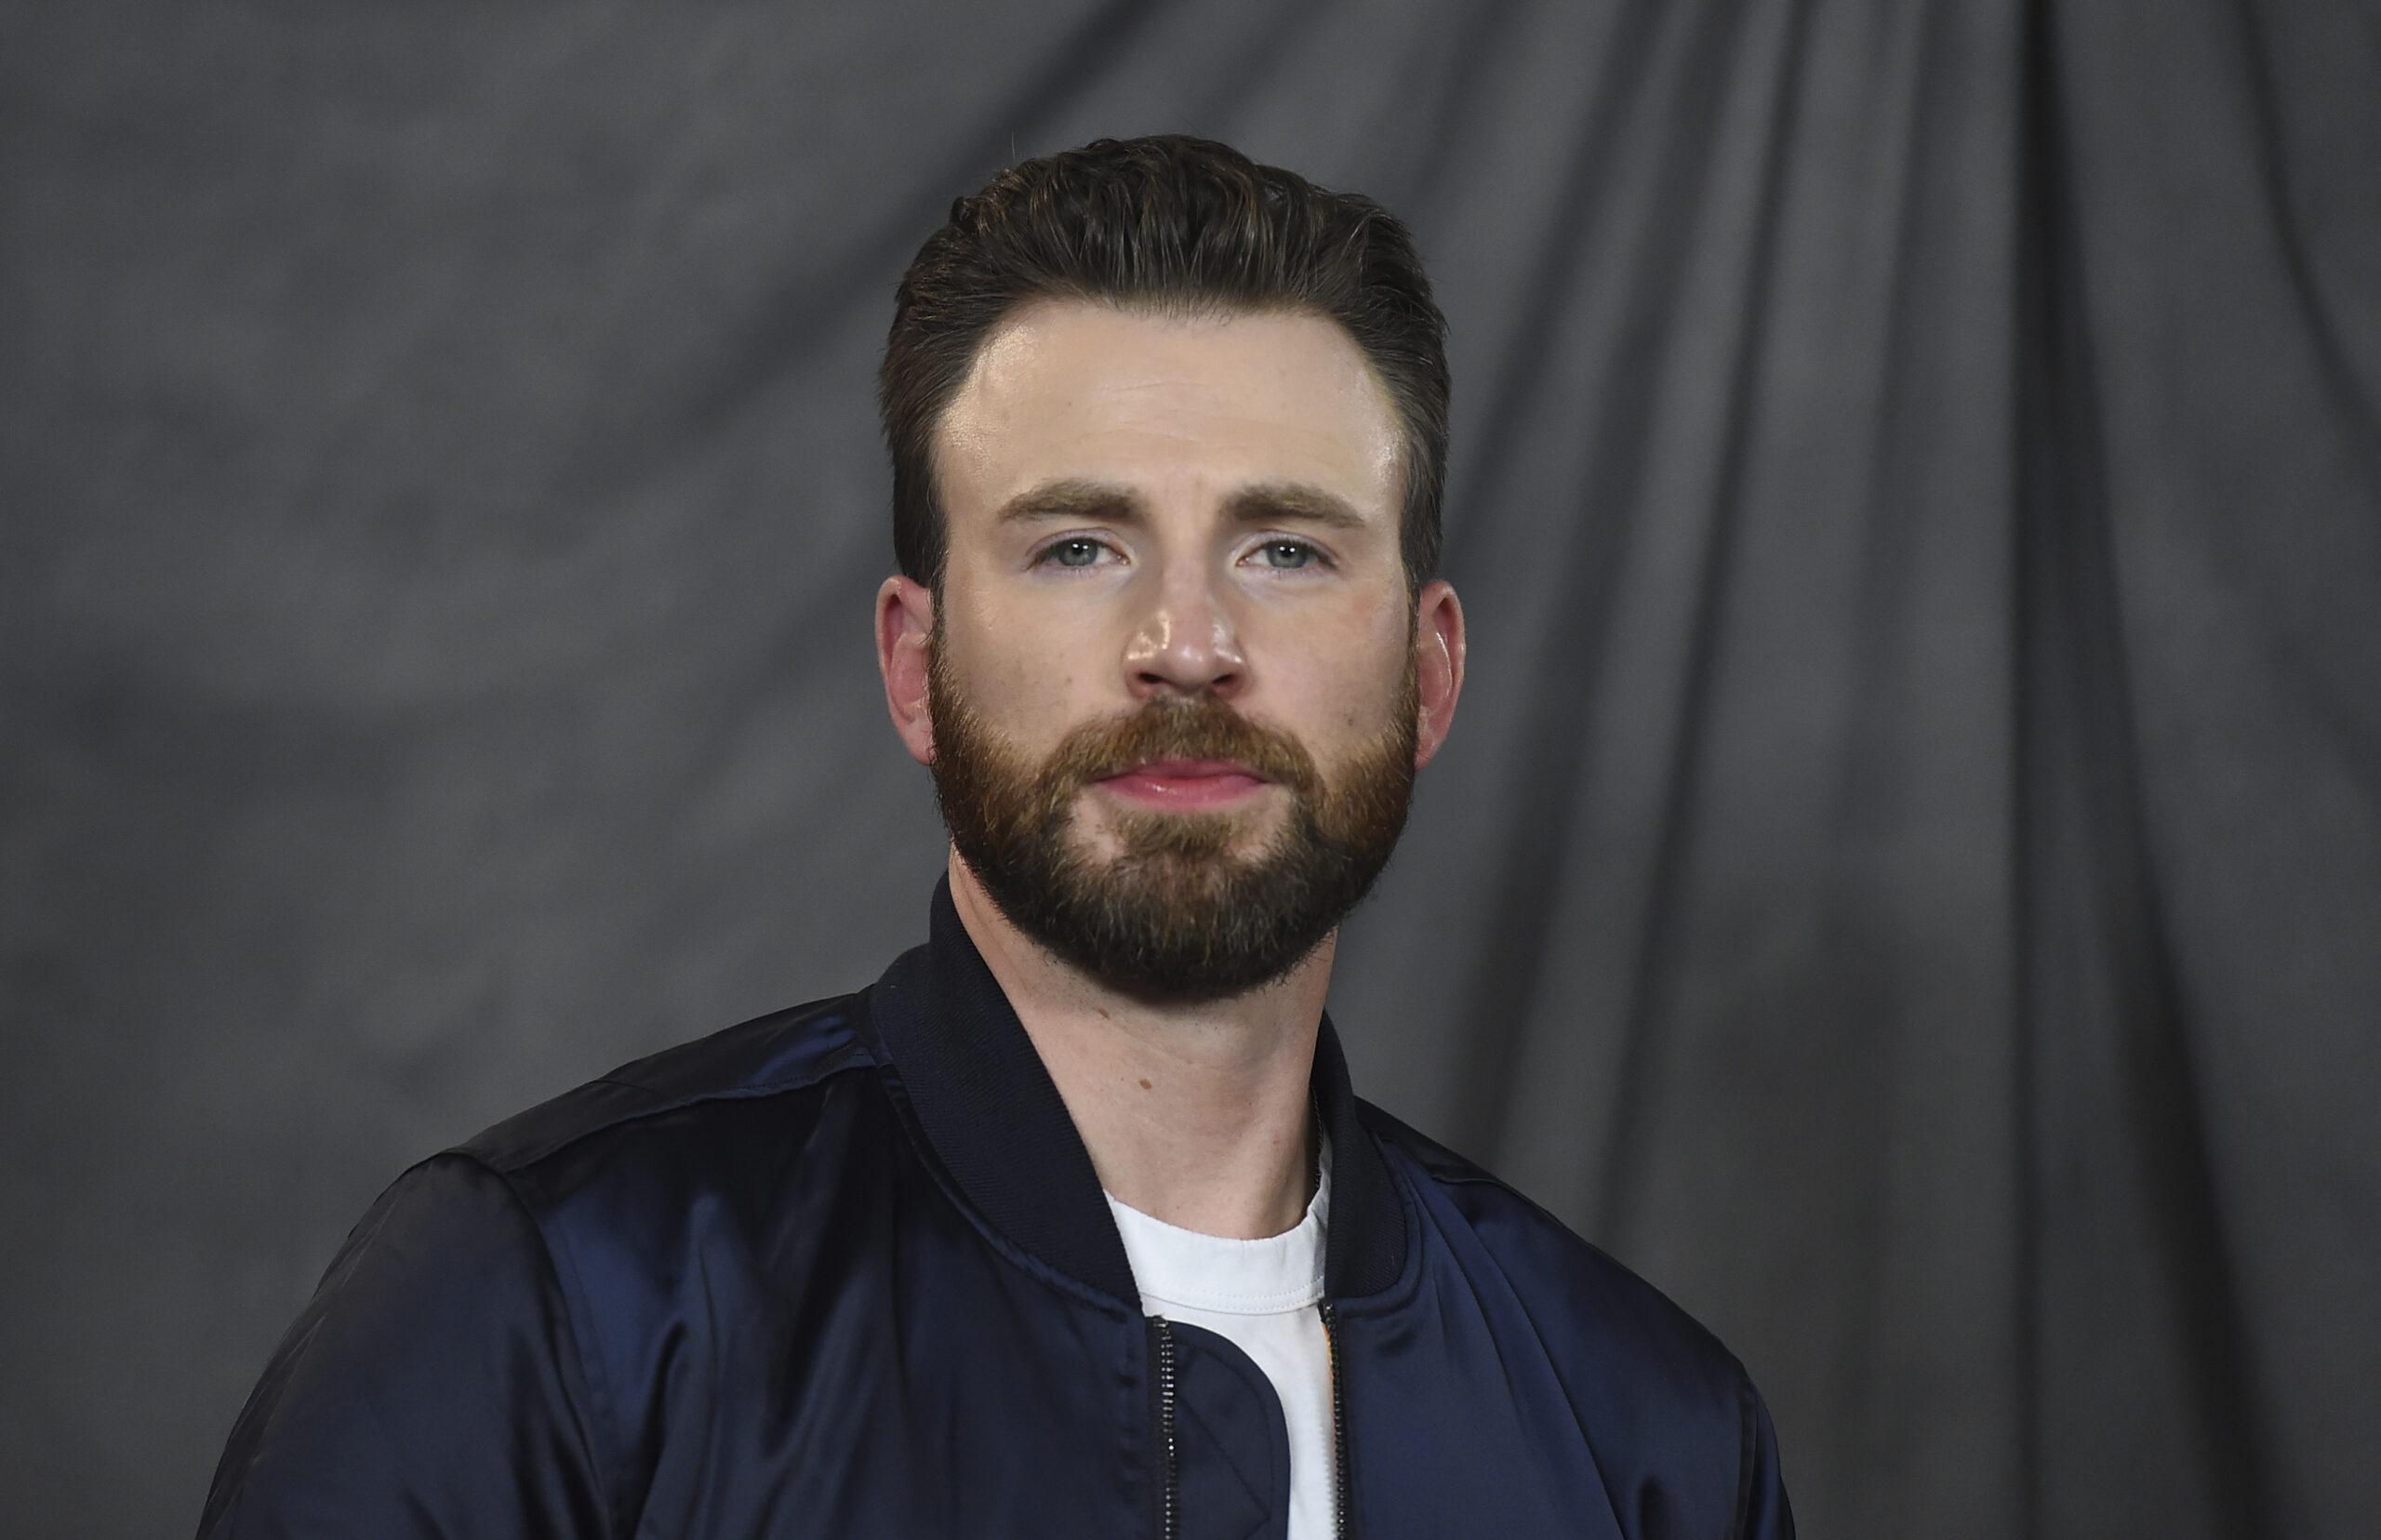 Avengers' Chris Evans accidentally shares nude photo on Instagram